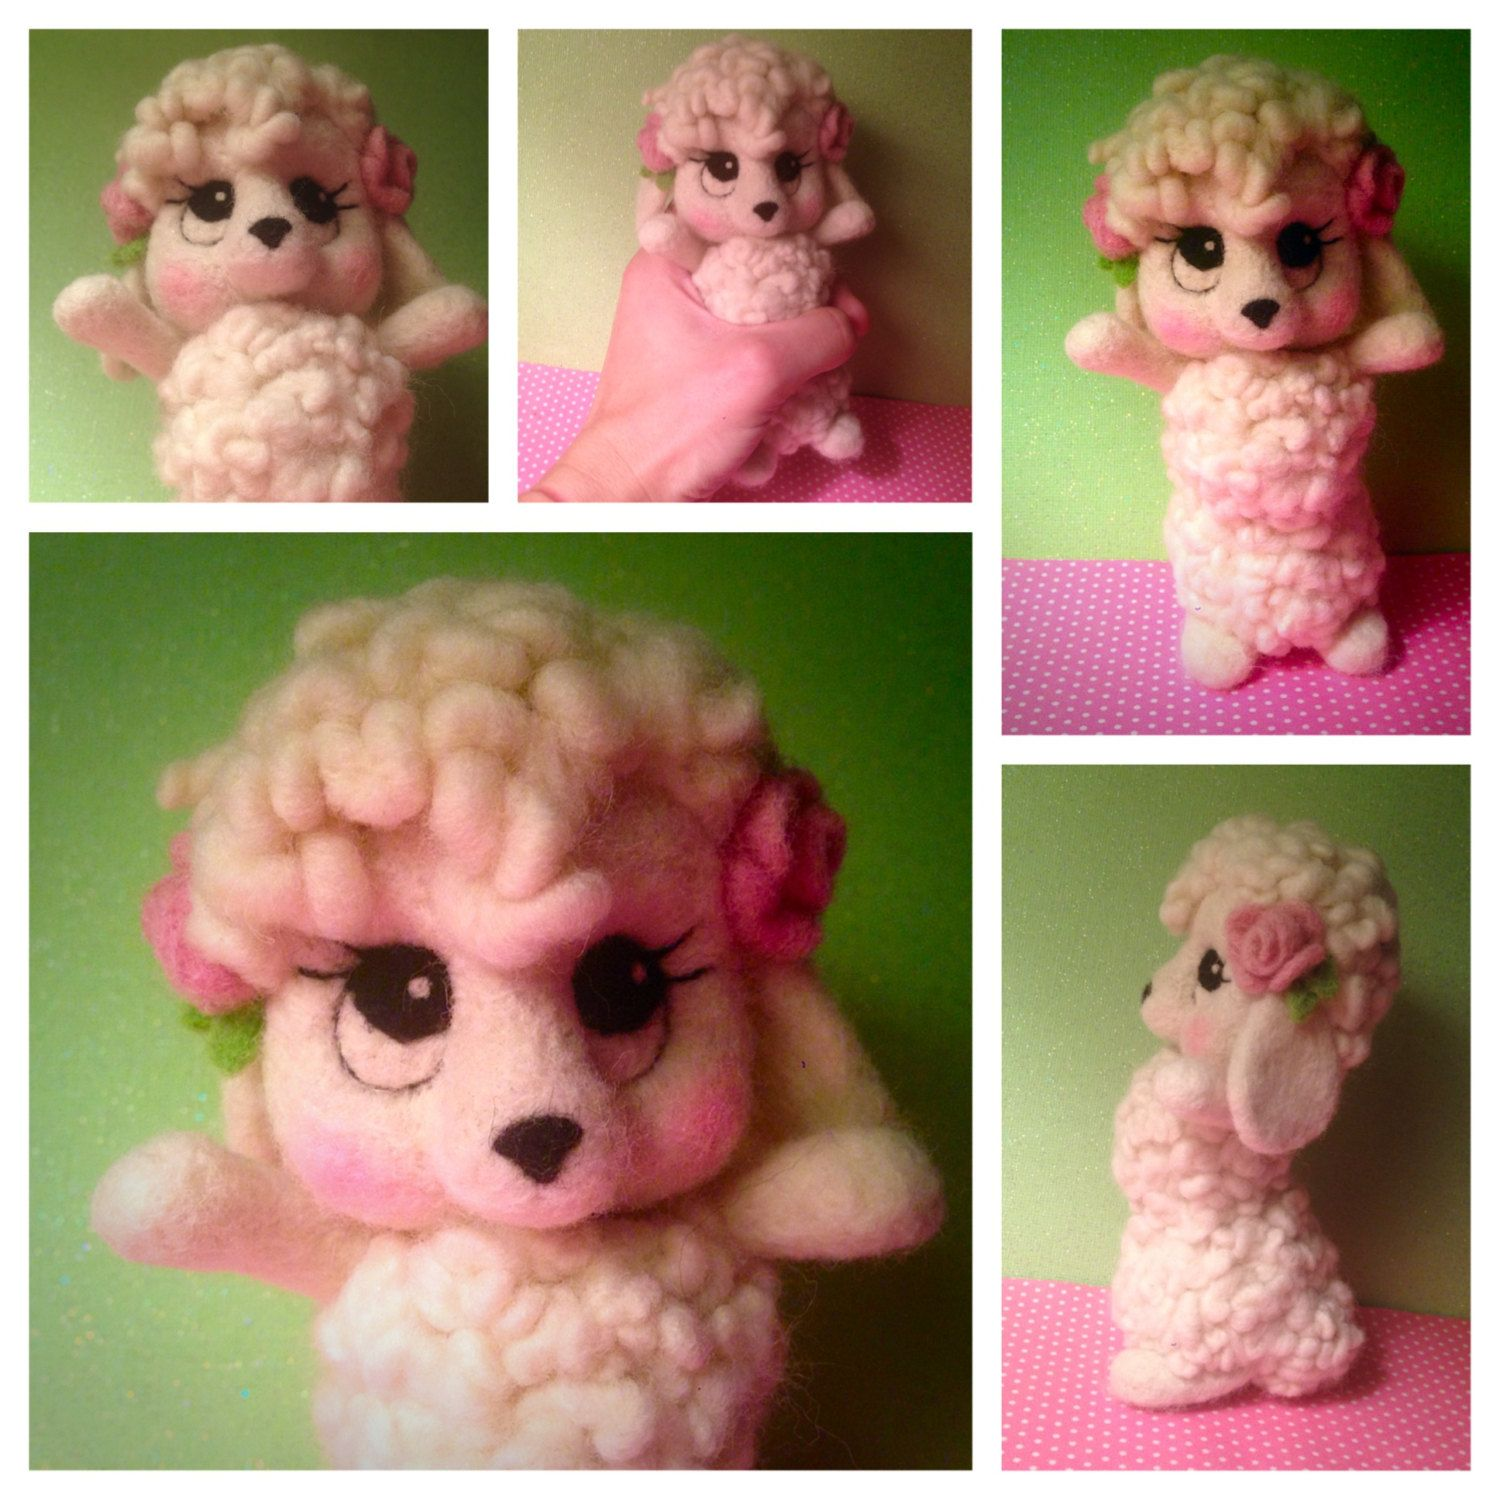 Needle Felted White Dog Soft Sculpture One of A Kind Art Doll Poodle Dog by MelaniesMenagerie on Etsy